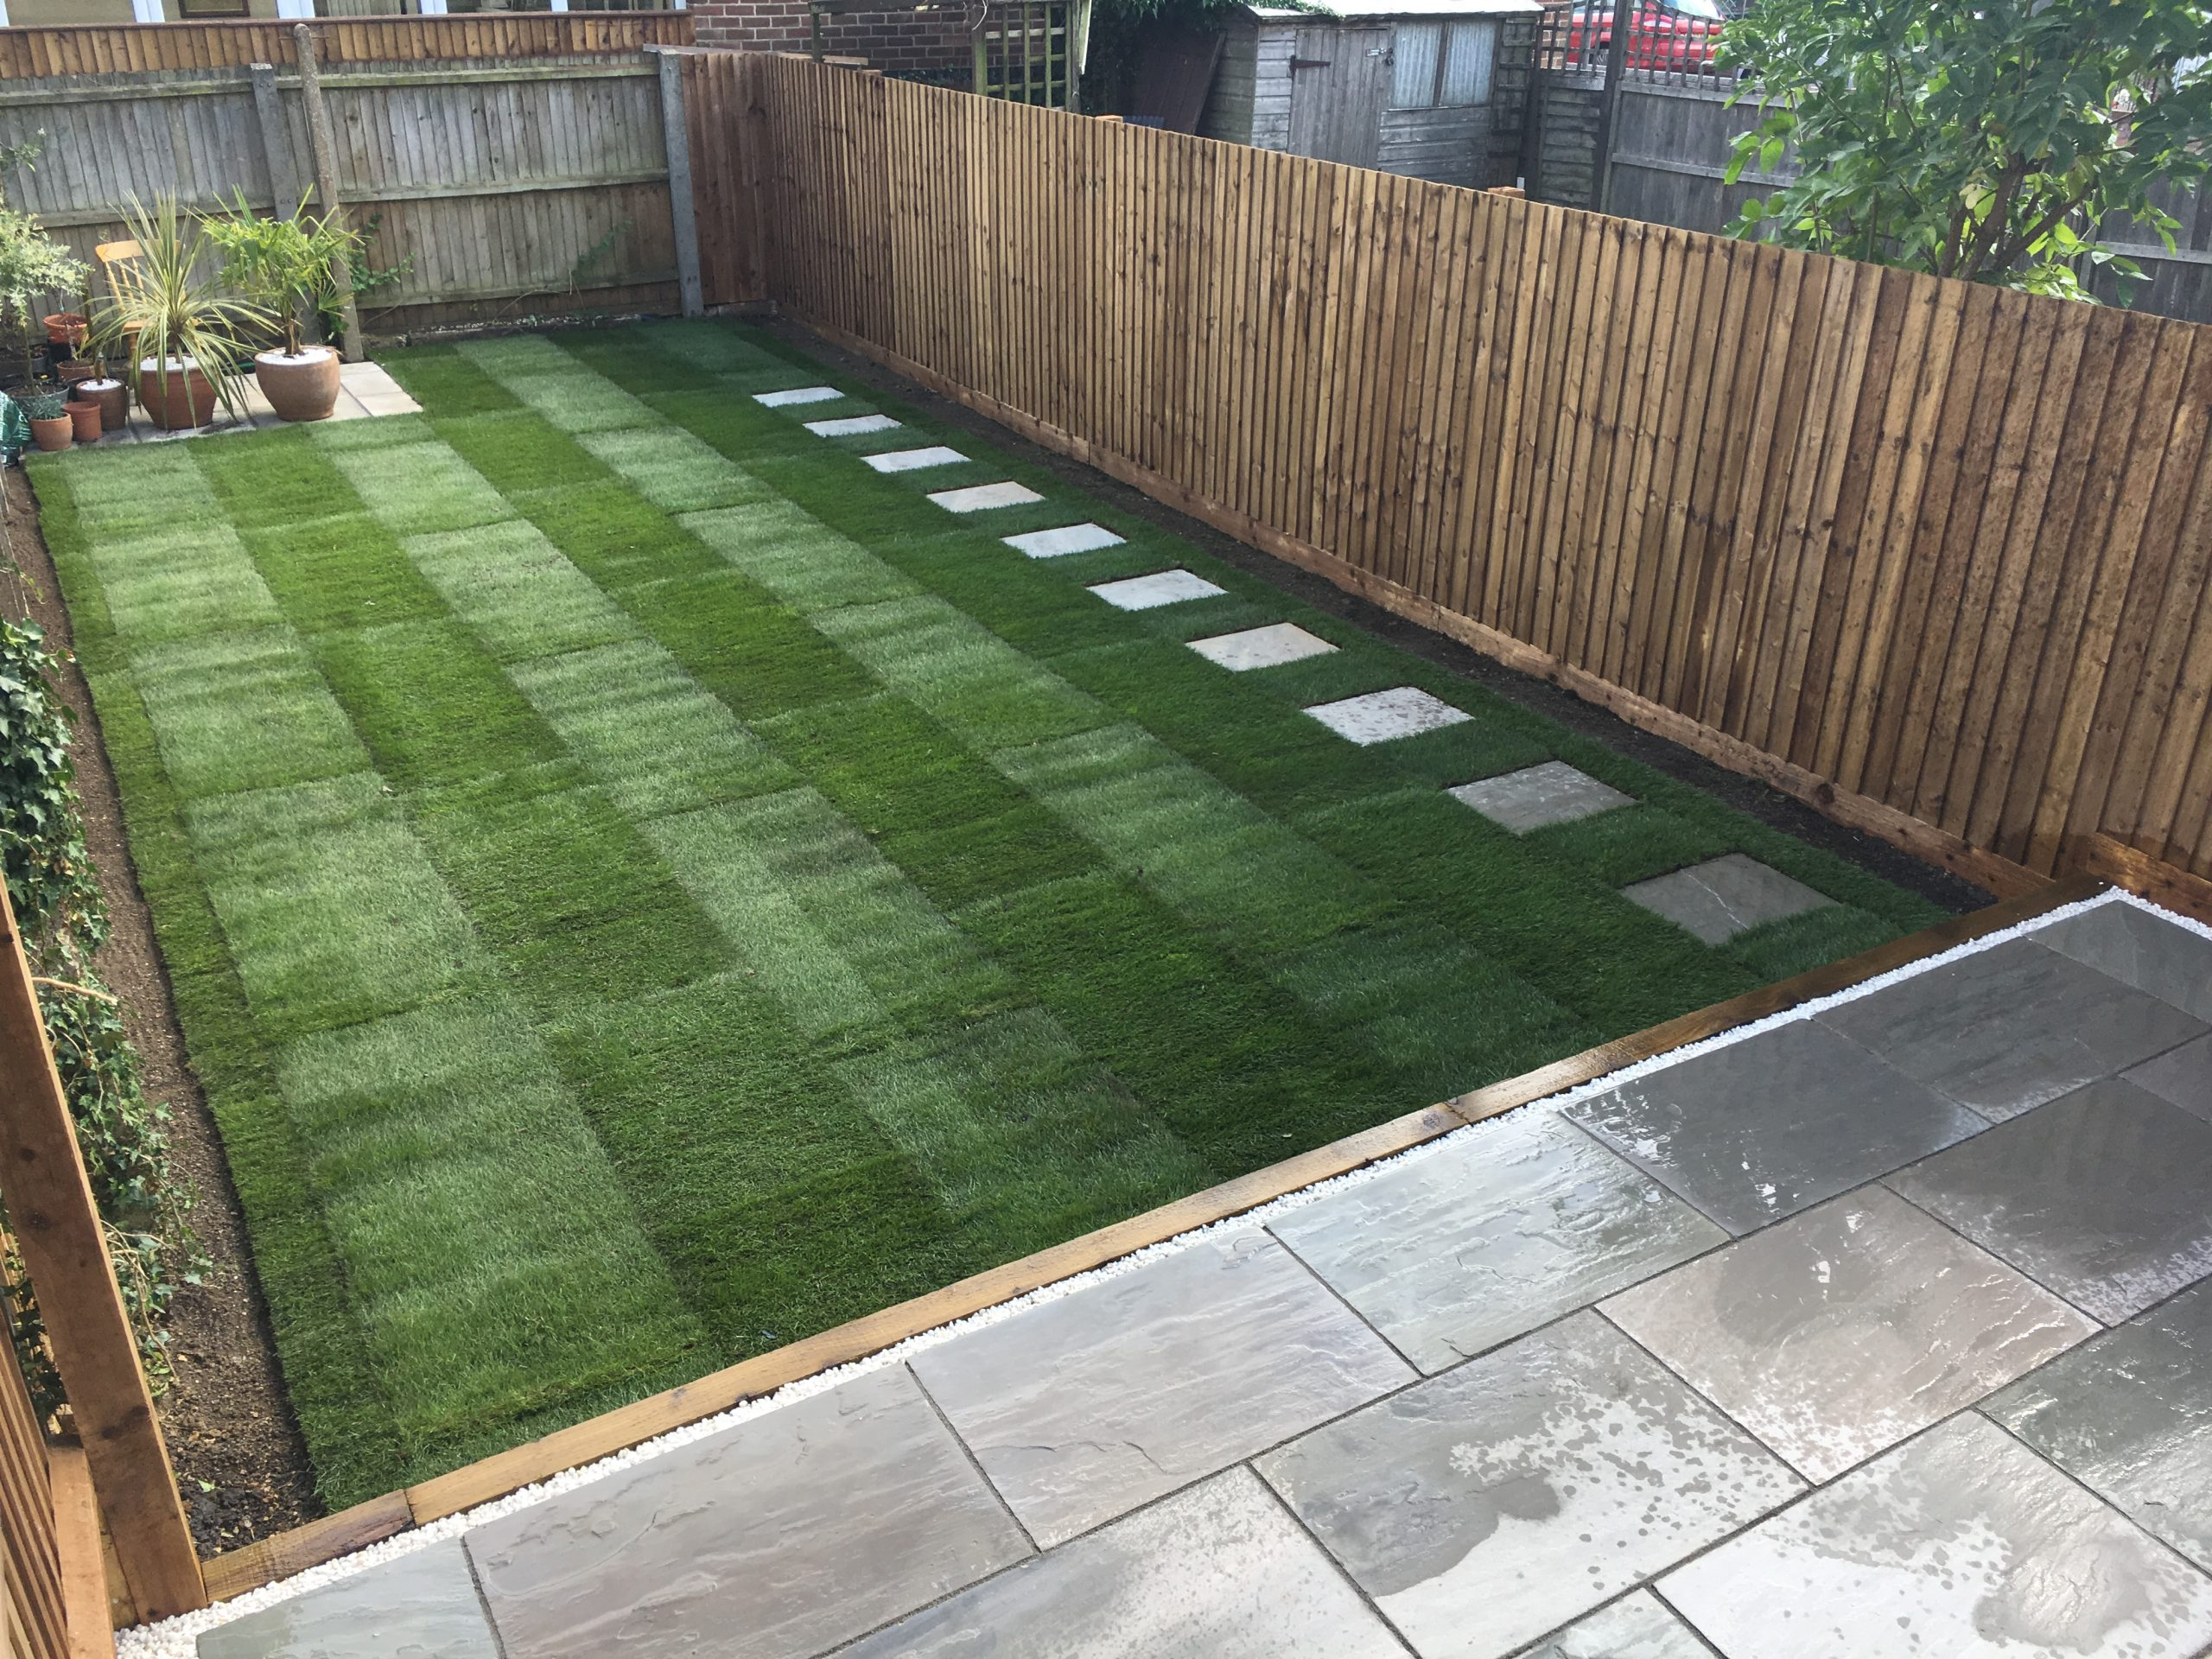 Landscaping company in Cambridge - Paving